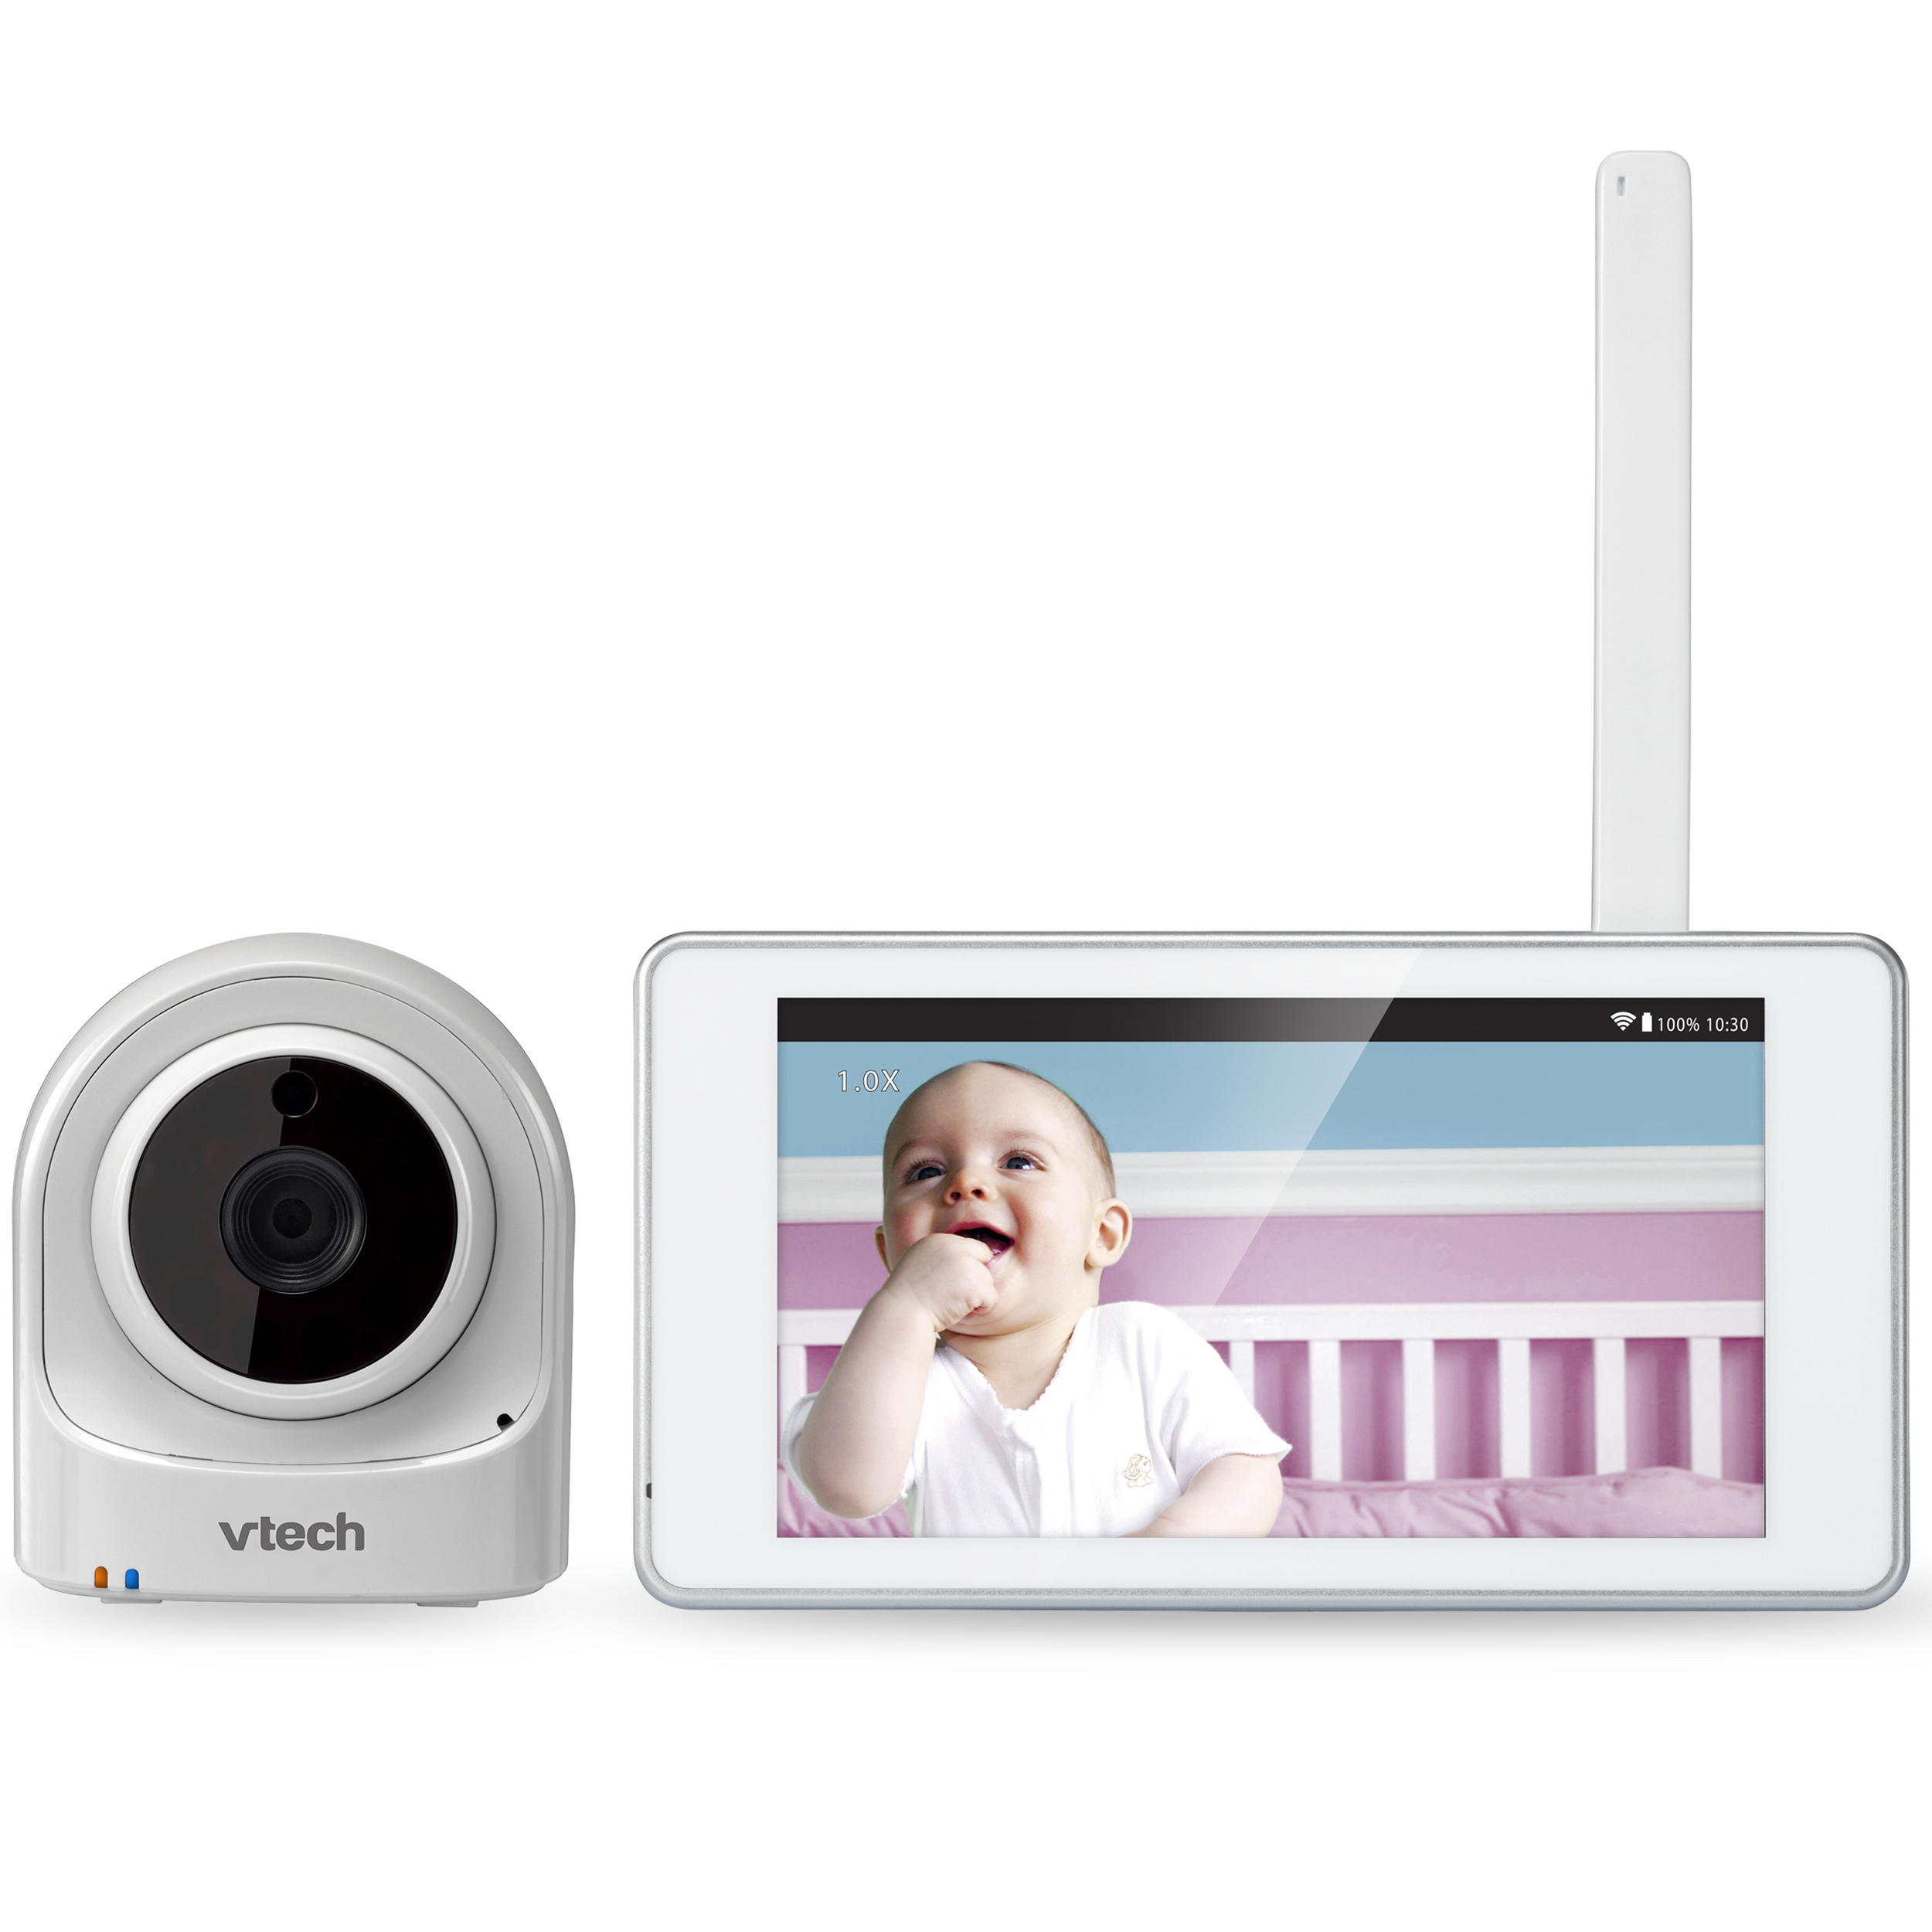 VTech VM981, Wi-Fi Video Baby Monitor, Remote Access